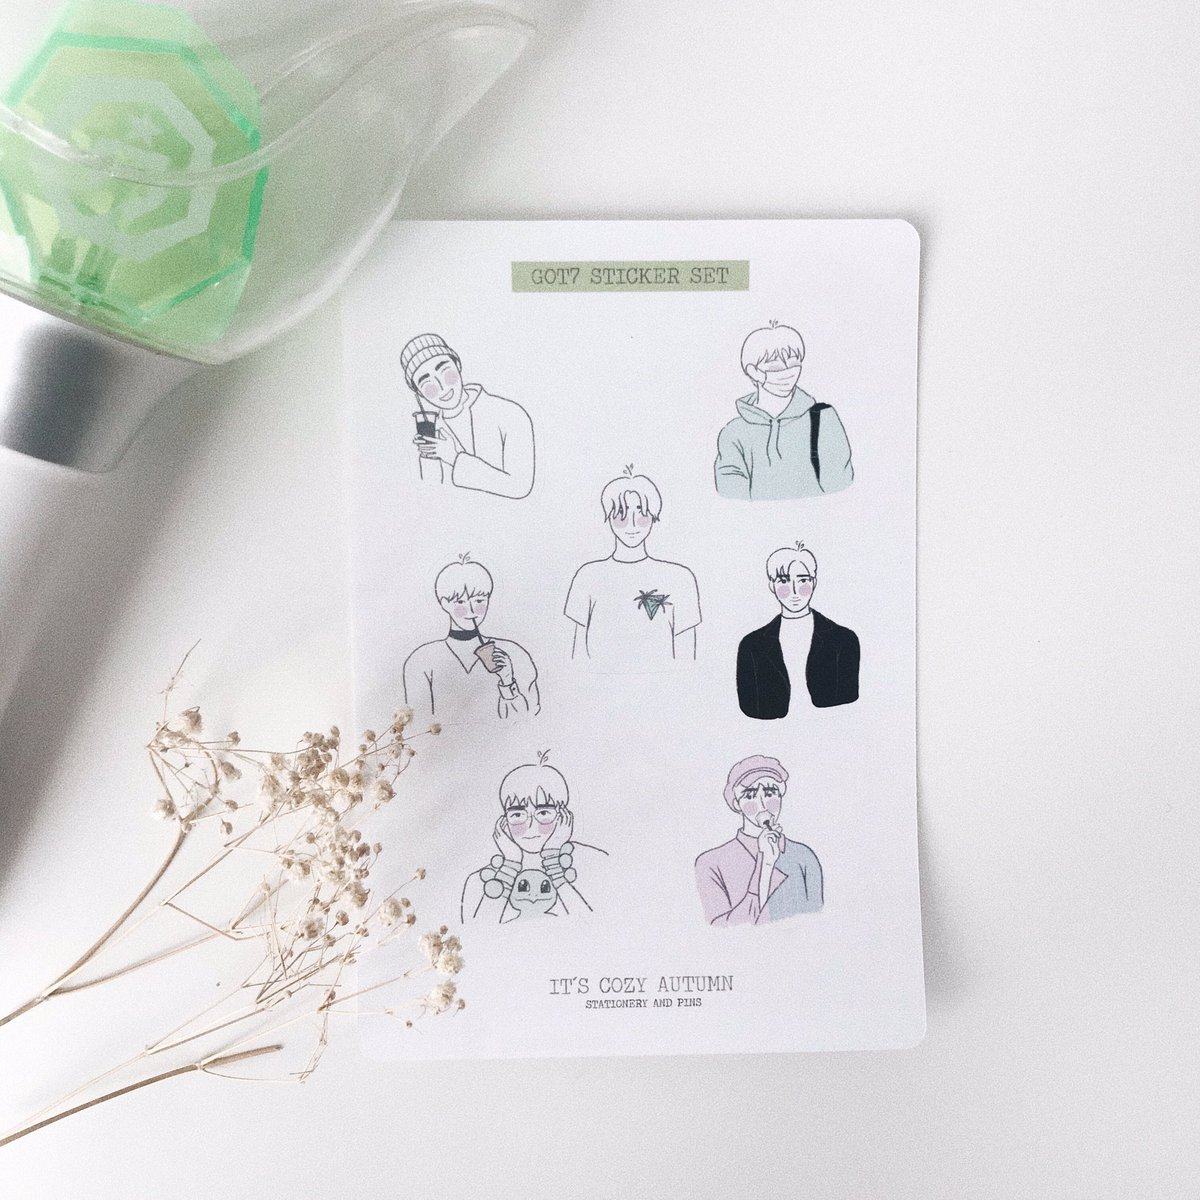 I made some got7 stickers  you can buy it if you want to in http://www.itscozyautumn.bigcartel.com a rt will help a lot #got7 #got7stickers @GOT7Official #sticker #stickers #shopupdate pic.twitter.com/2PcHzMPcRL